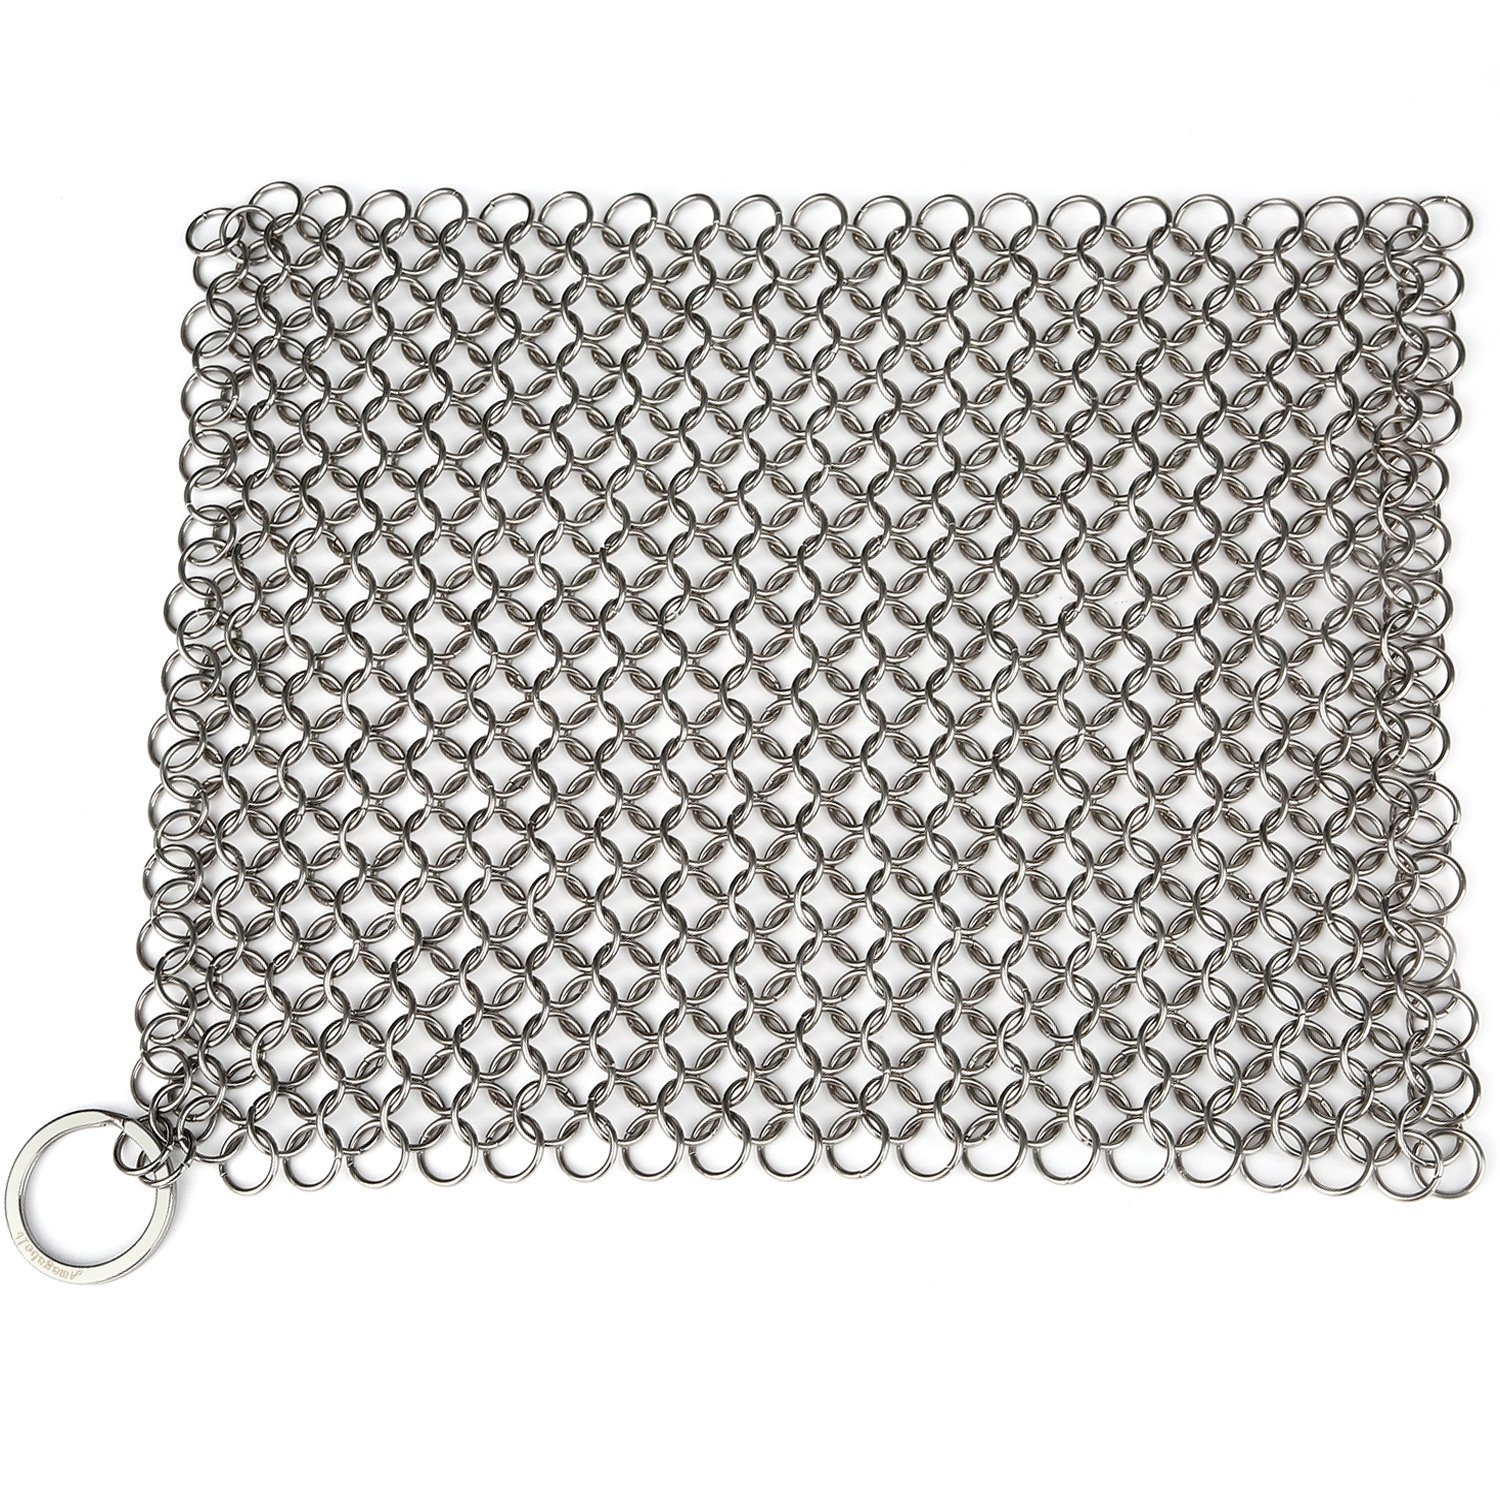 AMAGABELI GARDEN & HOME 8''x6'' Stainless Steel Cast Iron Cleaner 316L Chainmail Scrubber for Cast Iron Pan Pre-Seasoned Pan Dutch Ovens Waffle Iron Pans Scraper Cast Iron Grill Skillet Scraper by AMAGABELI GARDEN & HOME (Image #2)